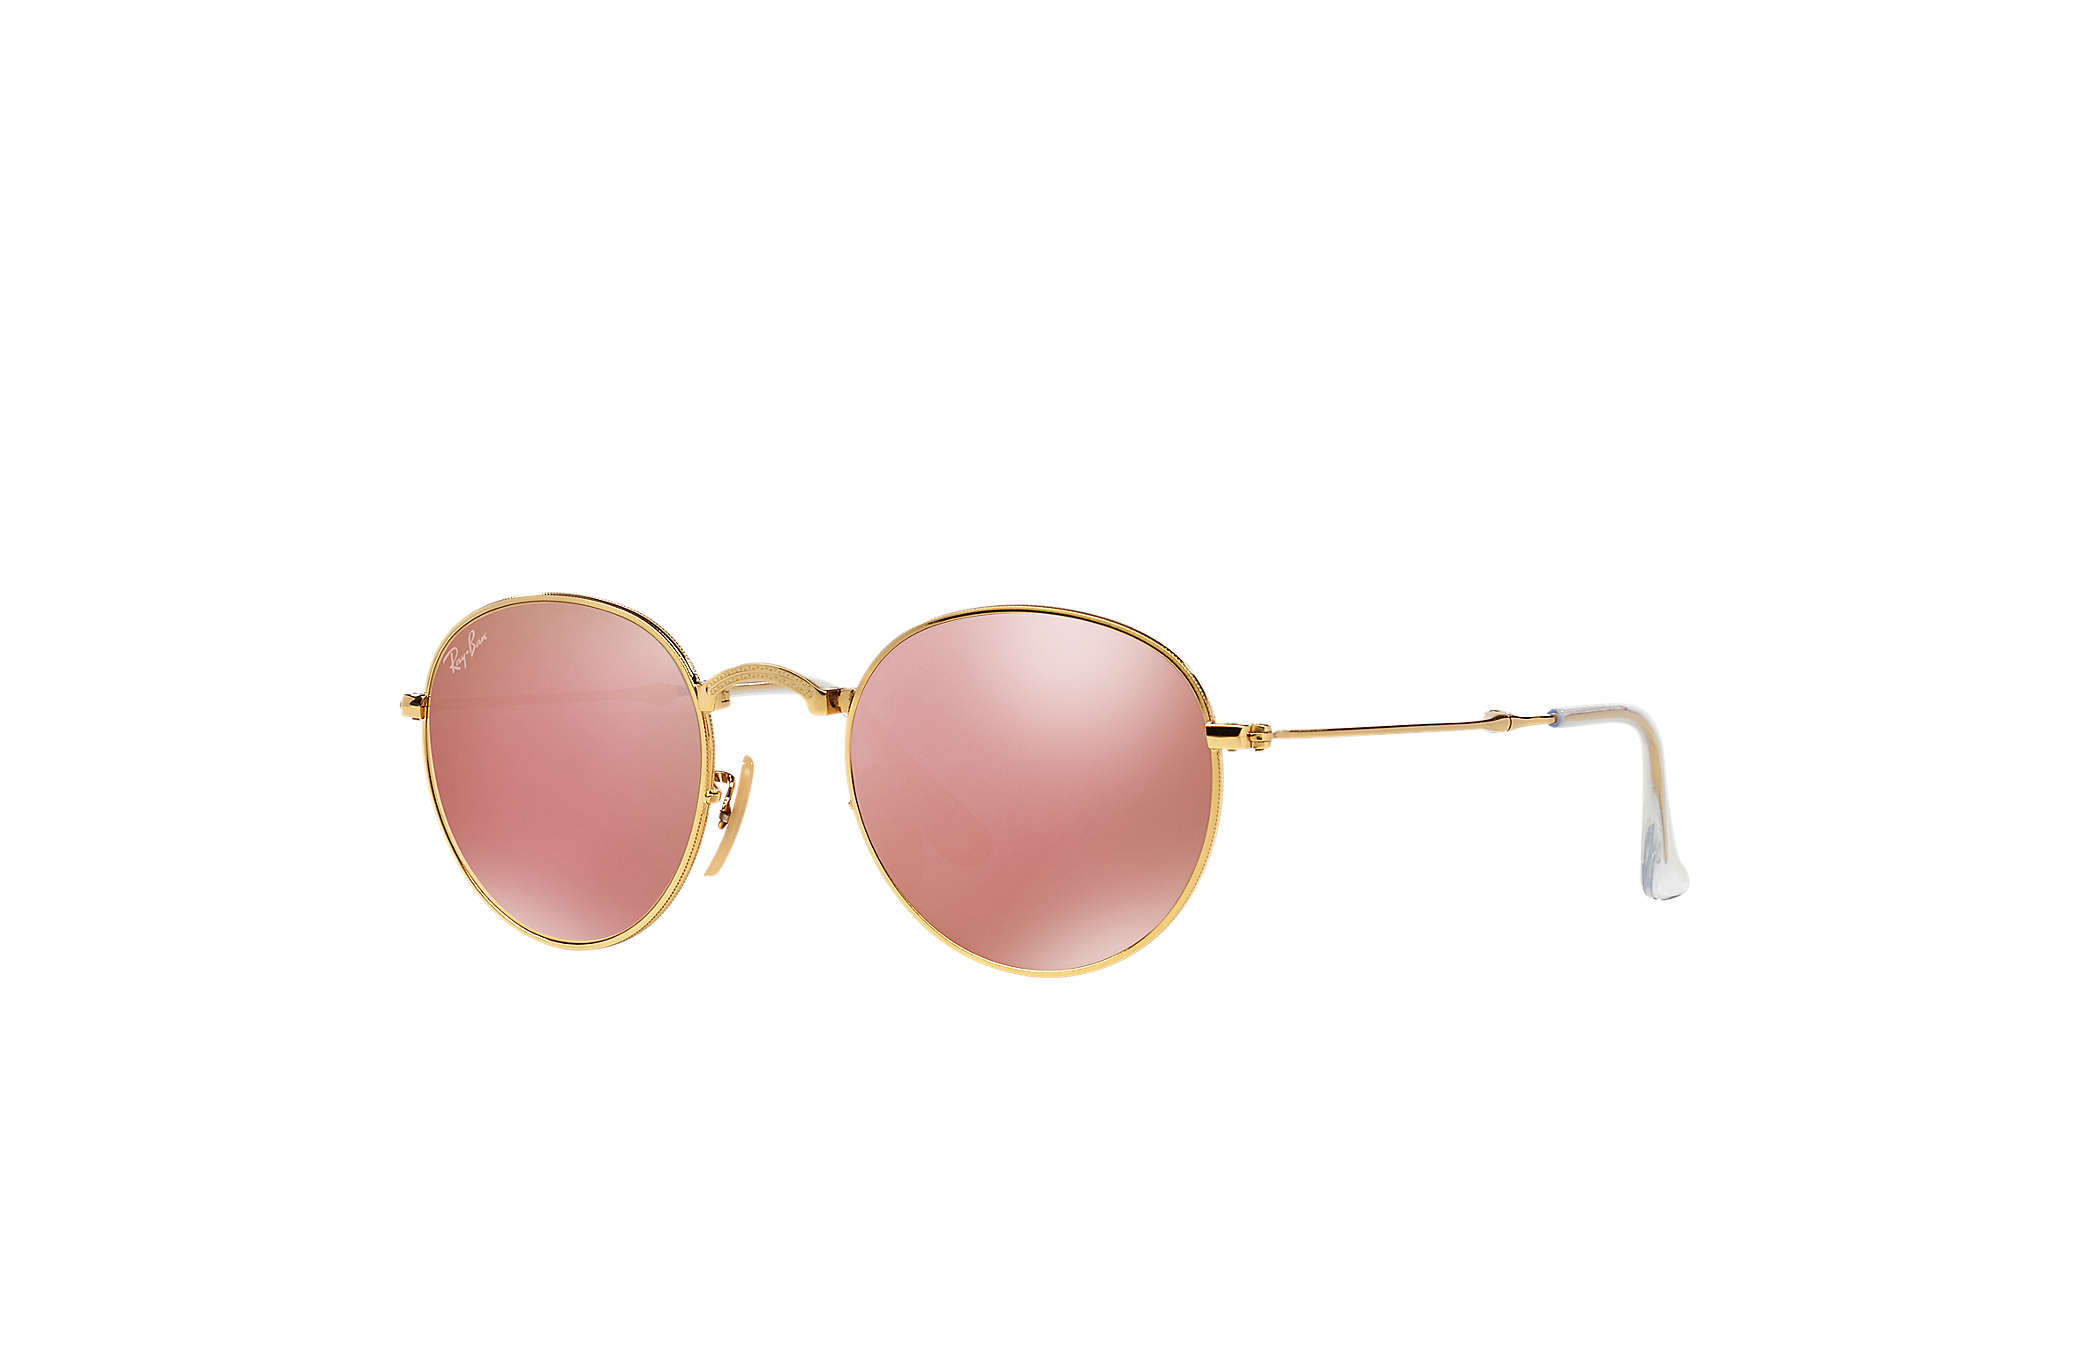 d51868156c5 Ray-Ban Round Metal Folding RB3532 Gold - Metal - Copper Lenses ...